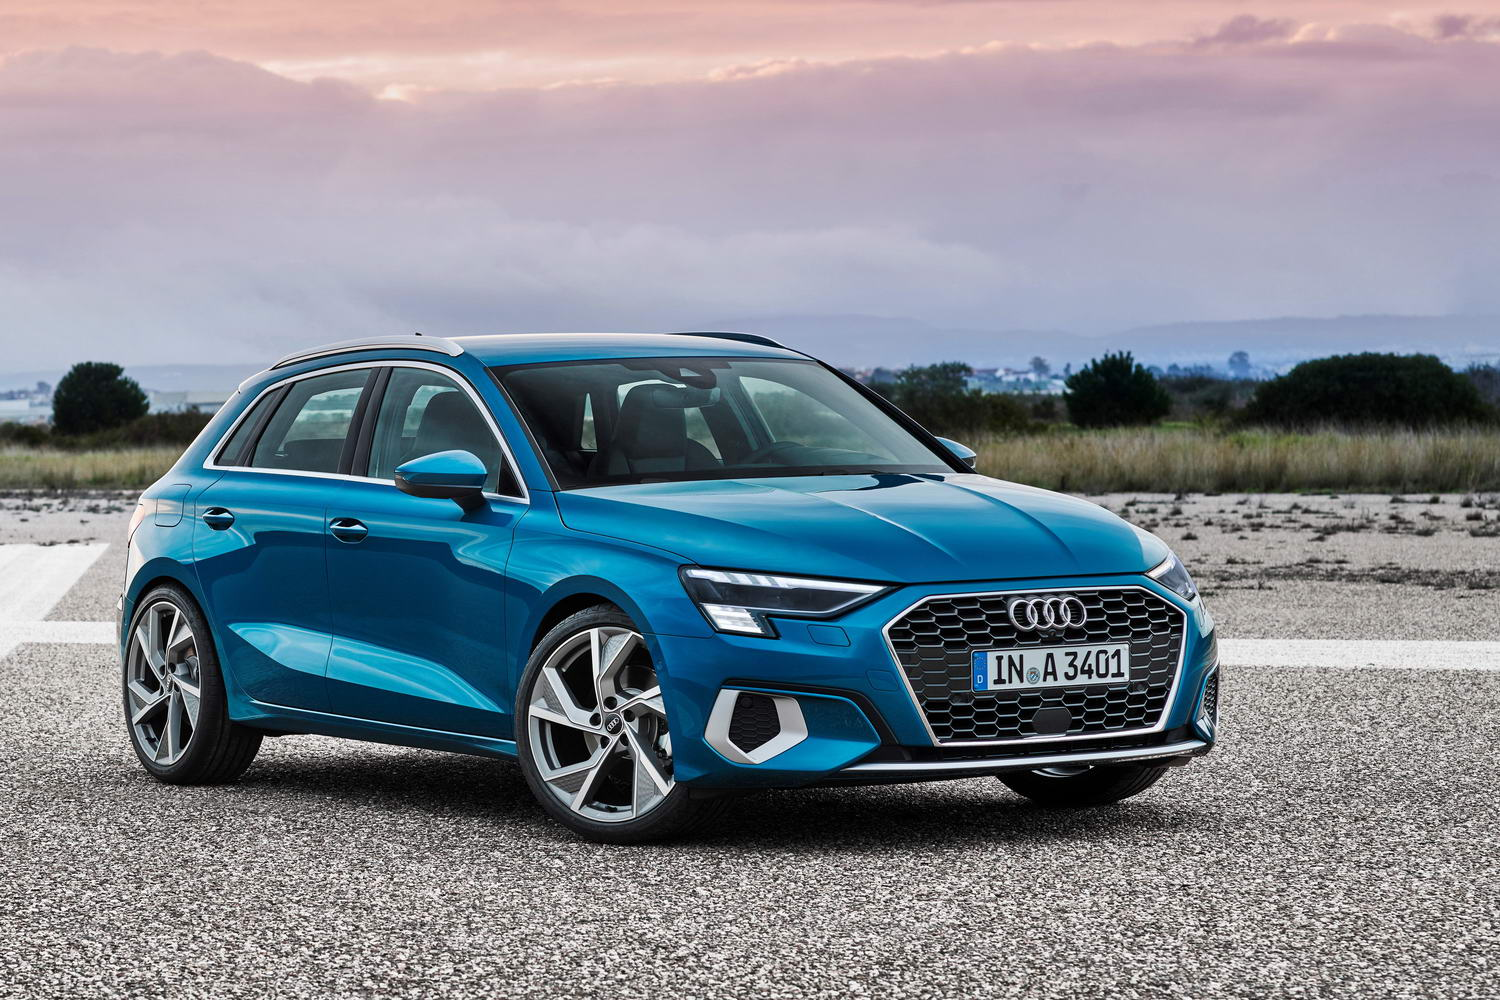 Car News | Audi shows off new A3 hatchback | CompleteCar.ie